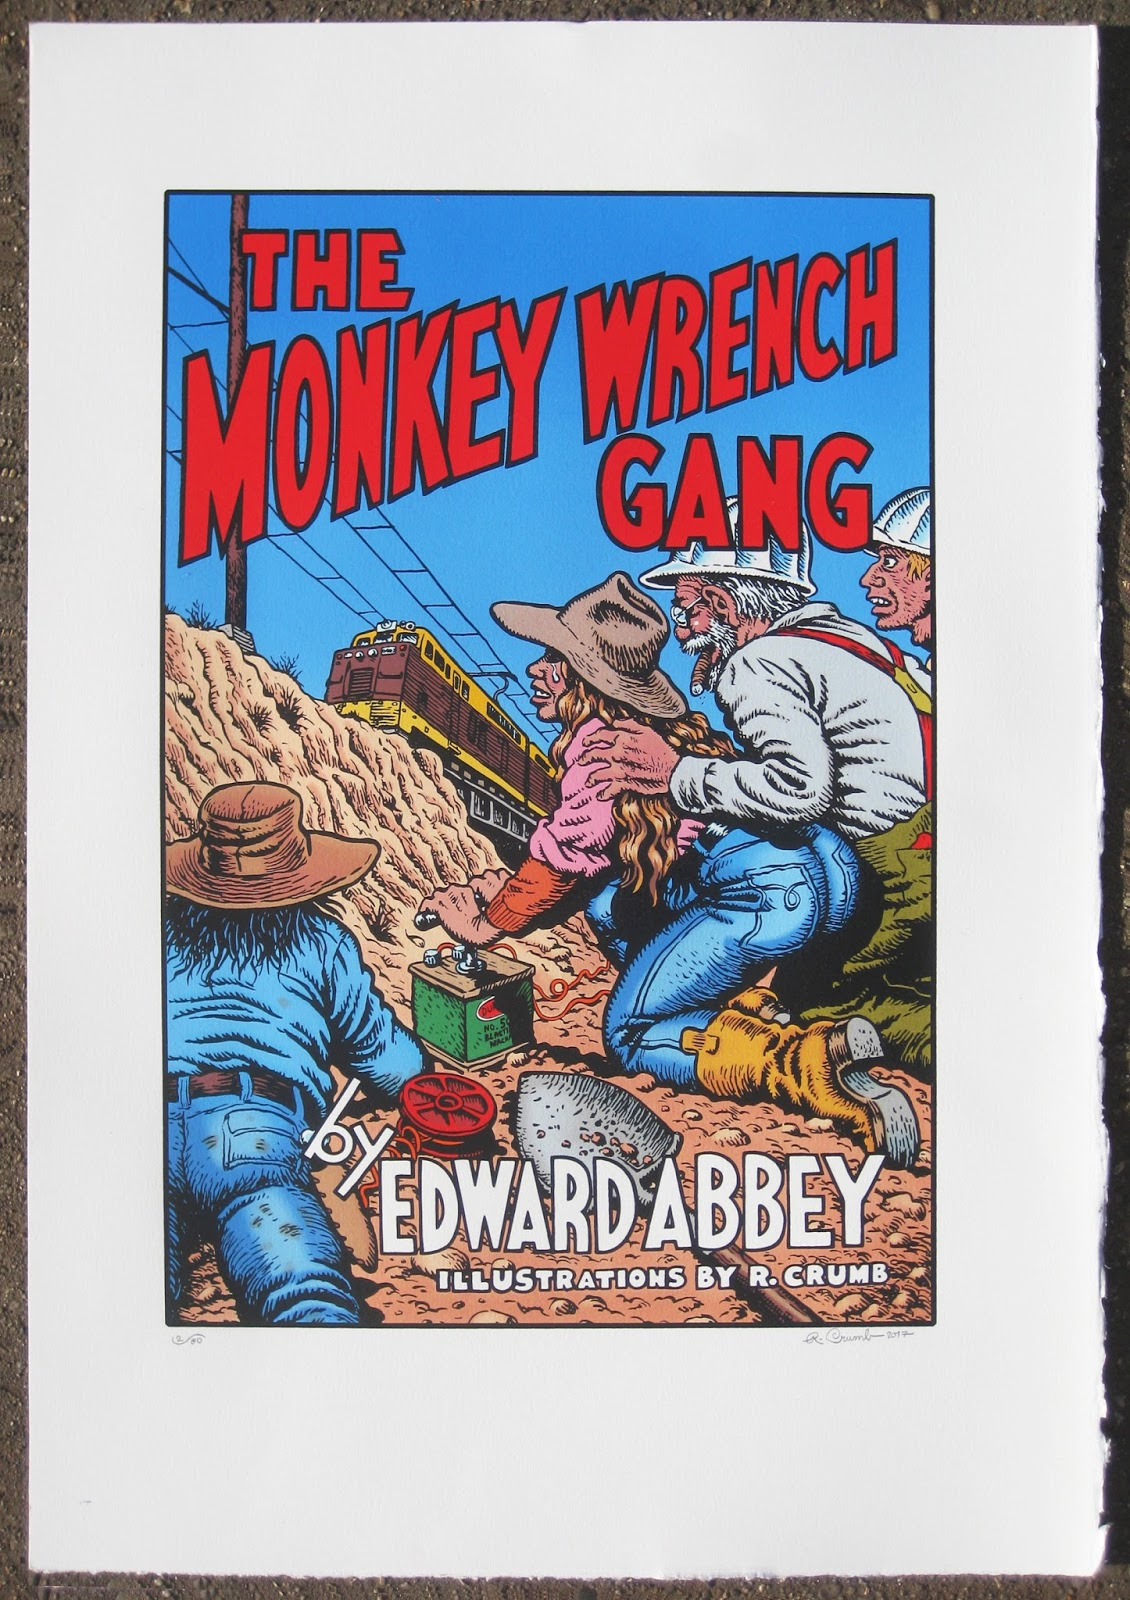 Crumb Newsletter The Monkey Wrench Gang Signed & Numbered Serigraph